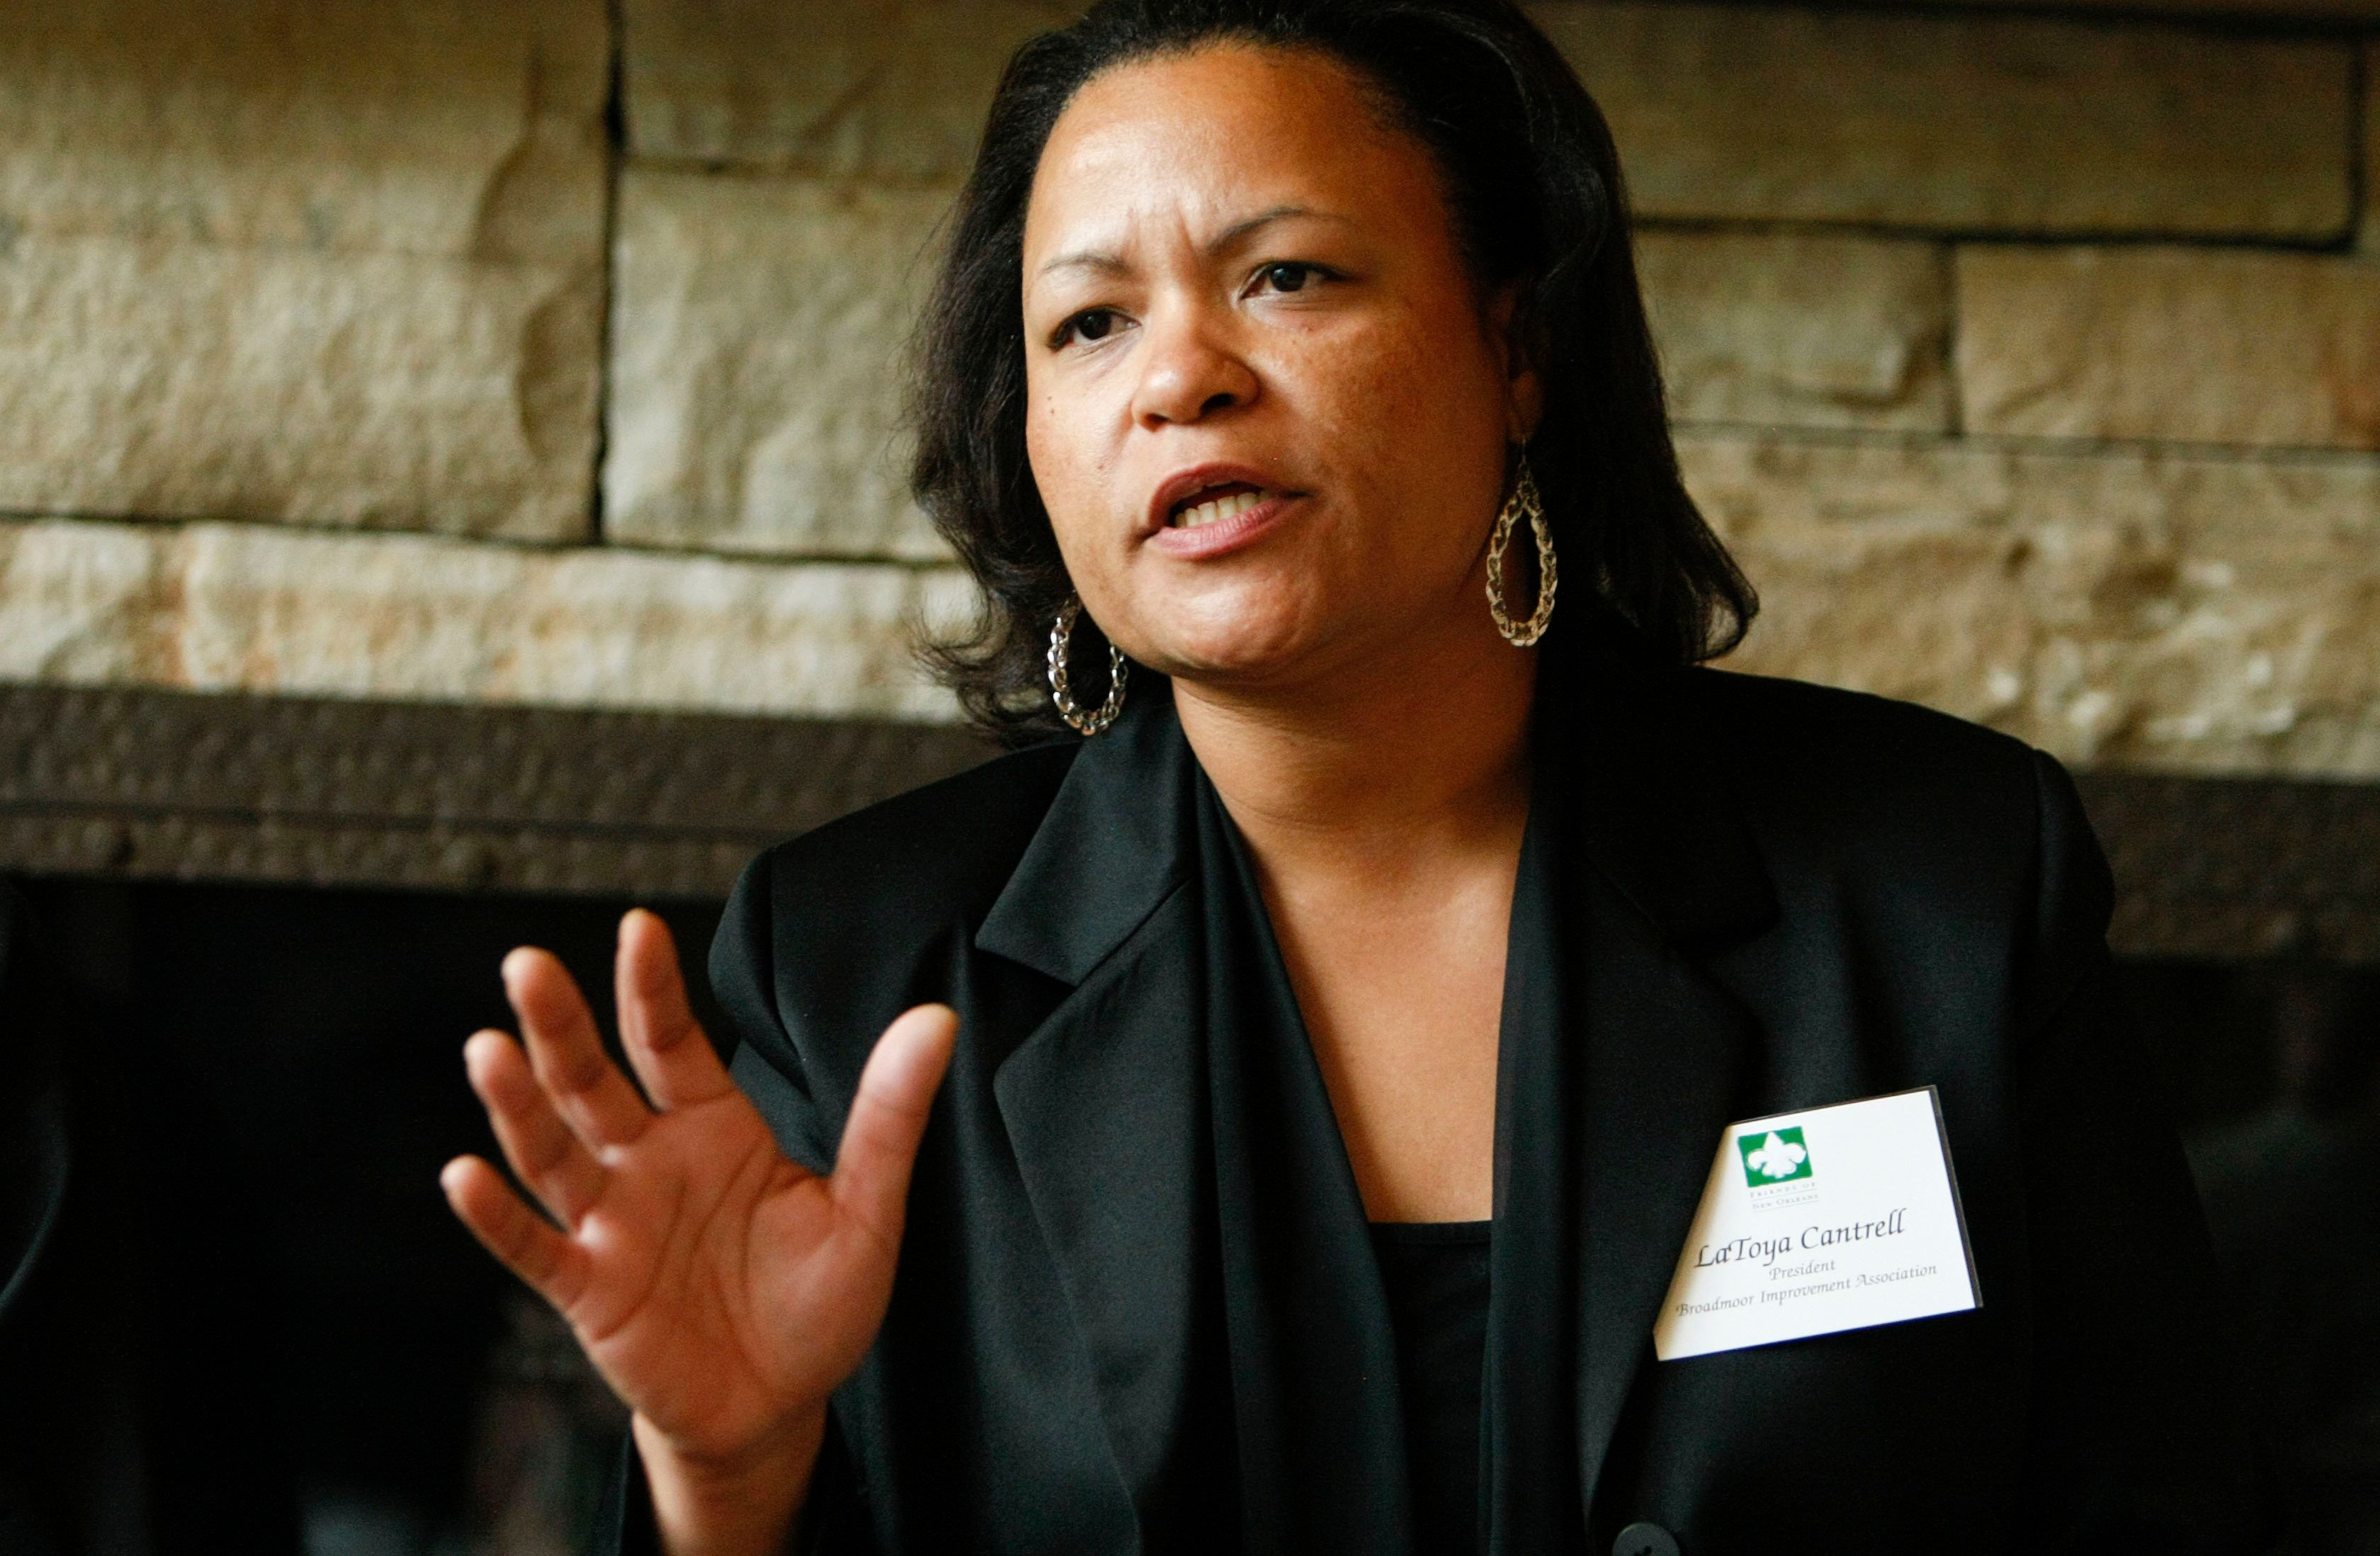 Progressive Community Organizer Prevails in New Orleans Mayoral Race